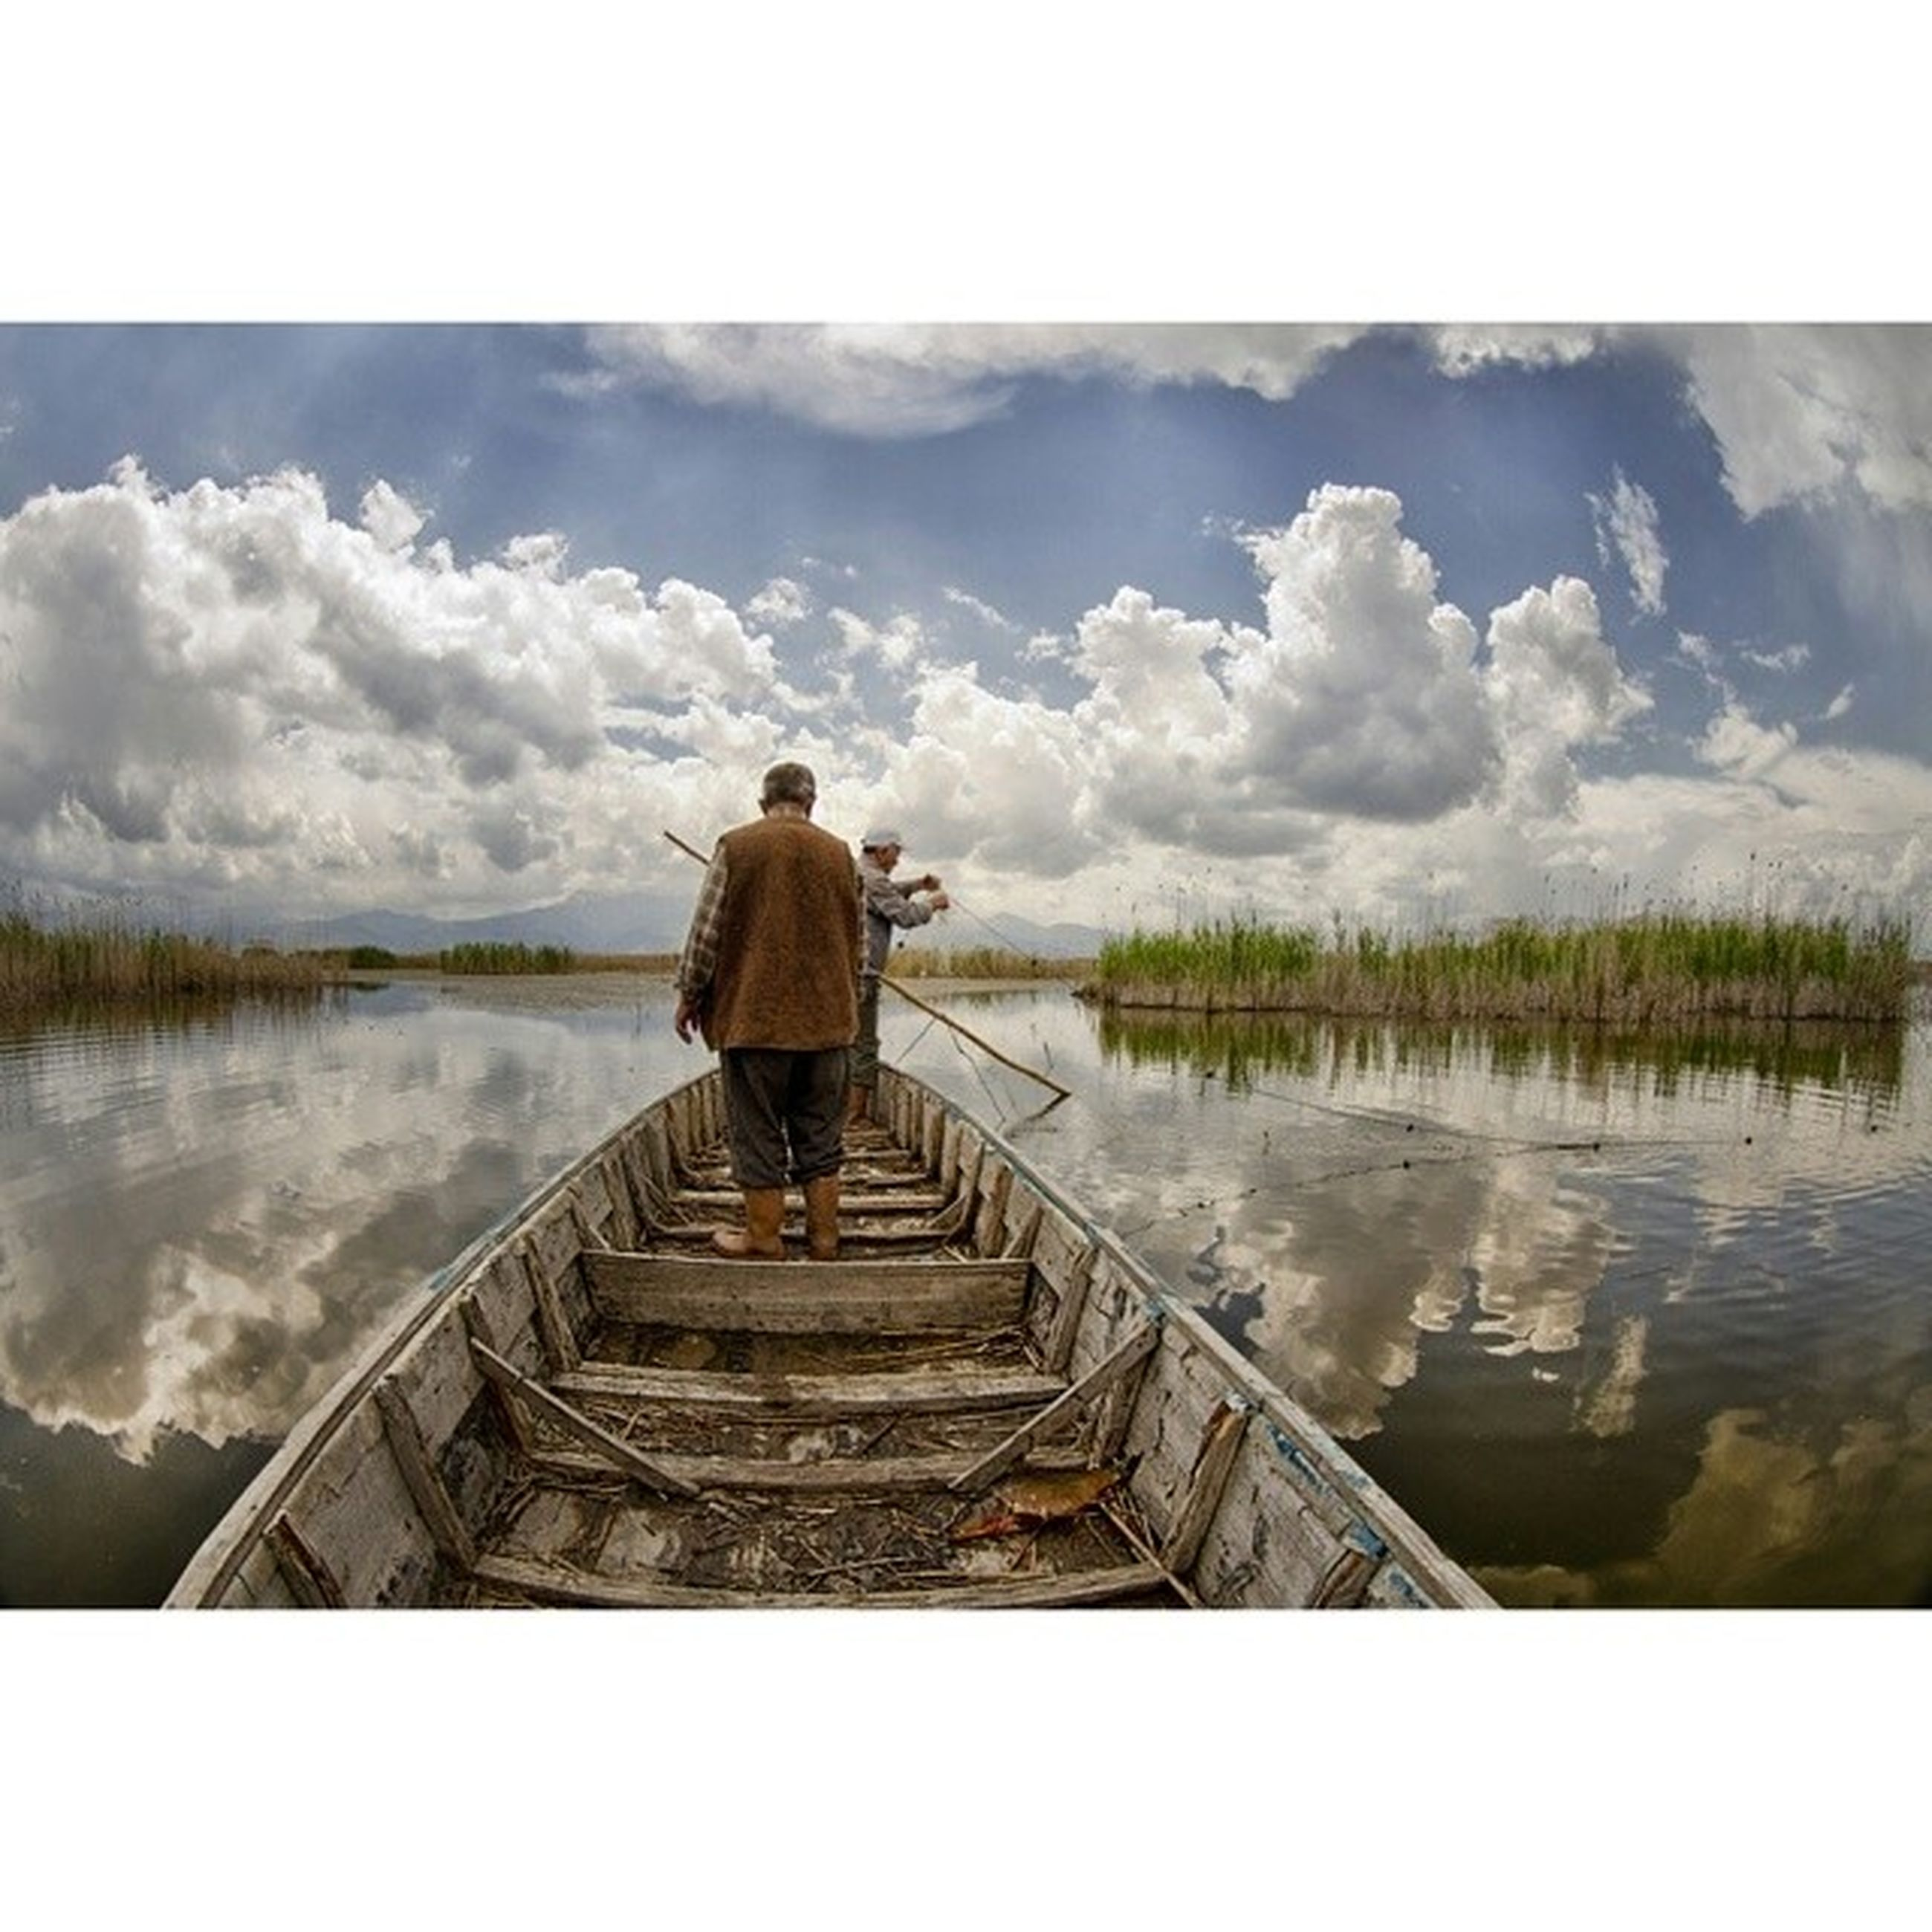 water, rear view, lifestyles, pier, sky, full length, leisure activity, standing, lake, railing, the way forward, men, tranquility, cloud - sky, jetty, tranquil scene, nature, person